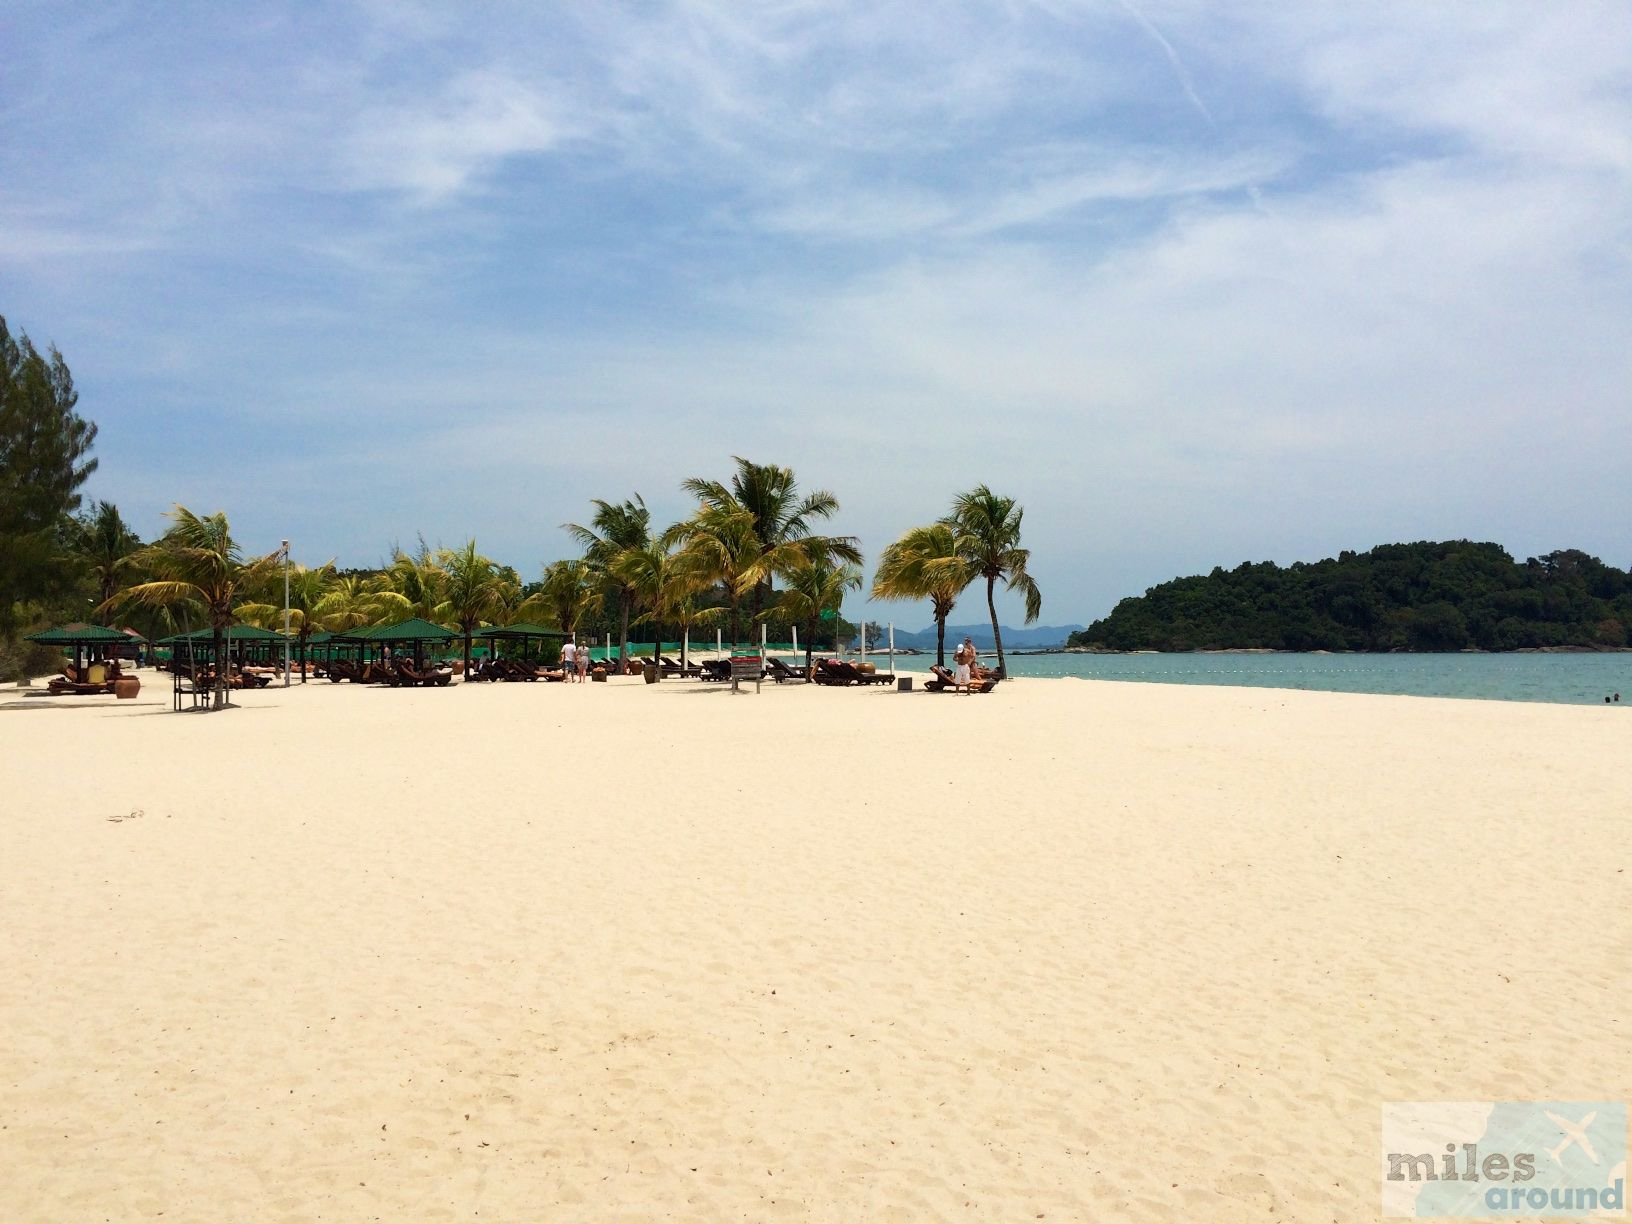 Strand des Berjaya Langkawi Resort - Check more at https://www.miles-around.de/hotel-reviews/berjaya-langkawi-resort/,  #Andaman #BerjayaLangkawiResort #Bewertung #Essen #Hotel #Langkawi #Malaysia #Meer #Ozean #Pool #Reisebericht #Strand #Urlaub